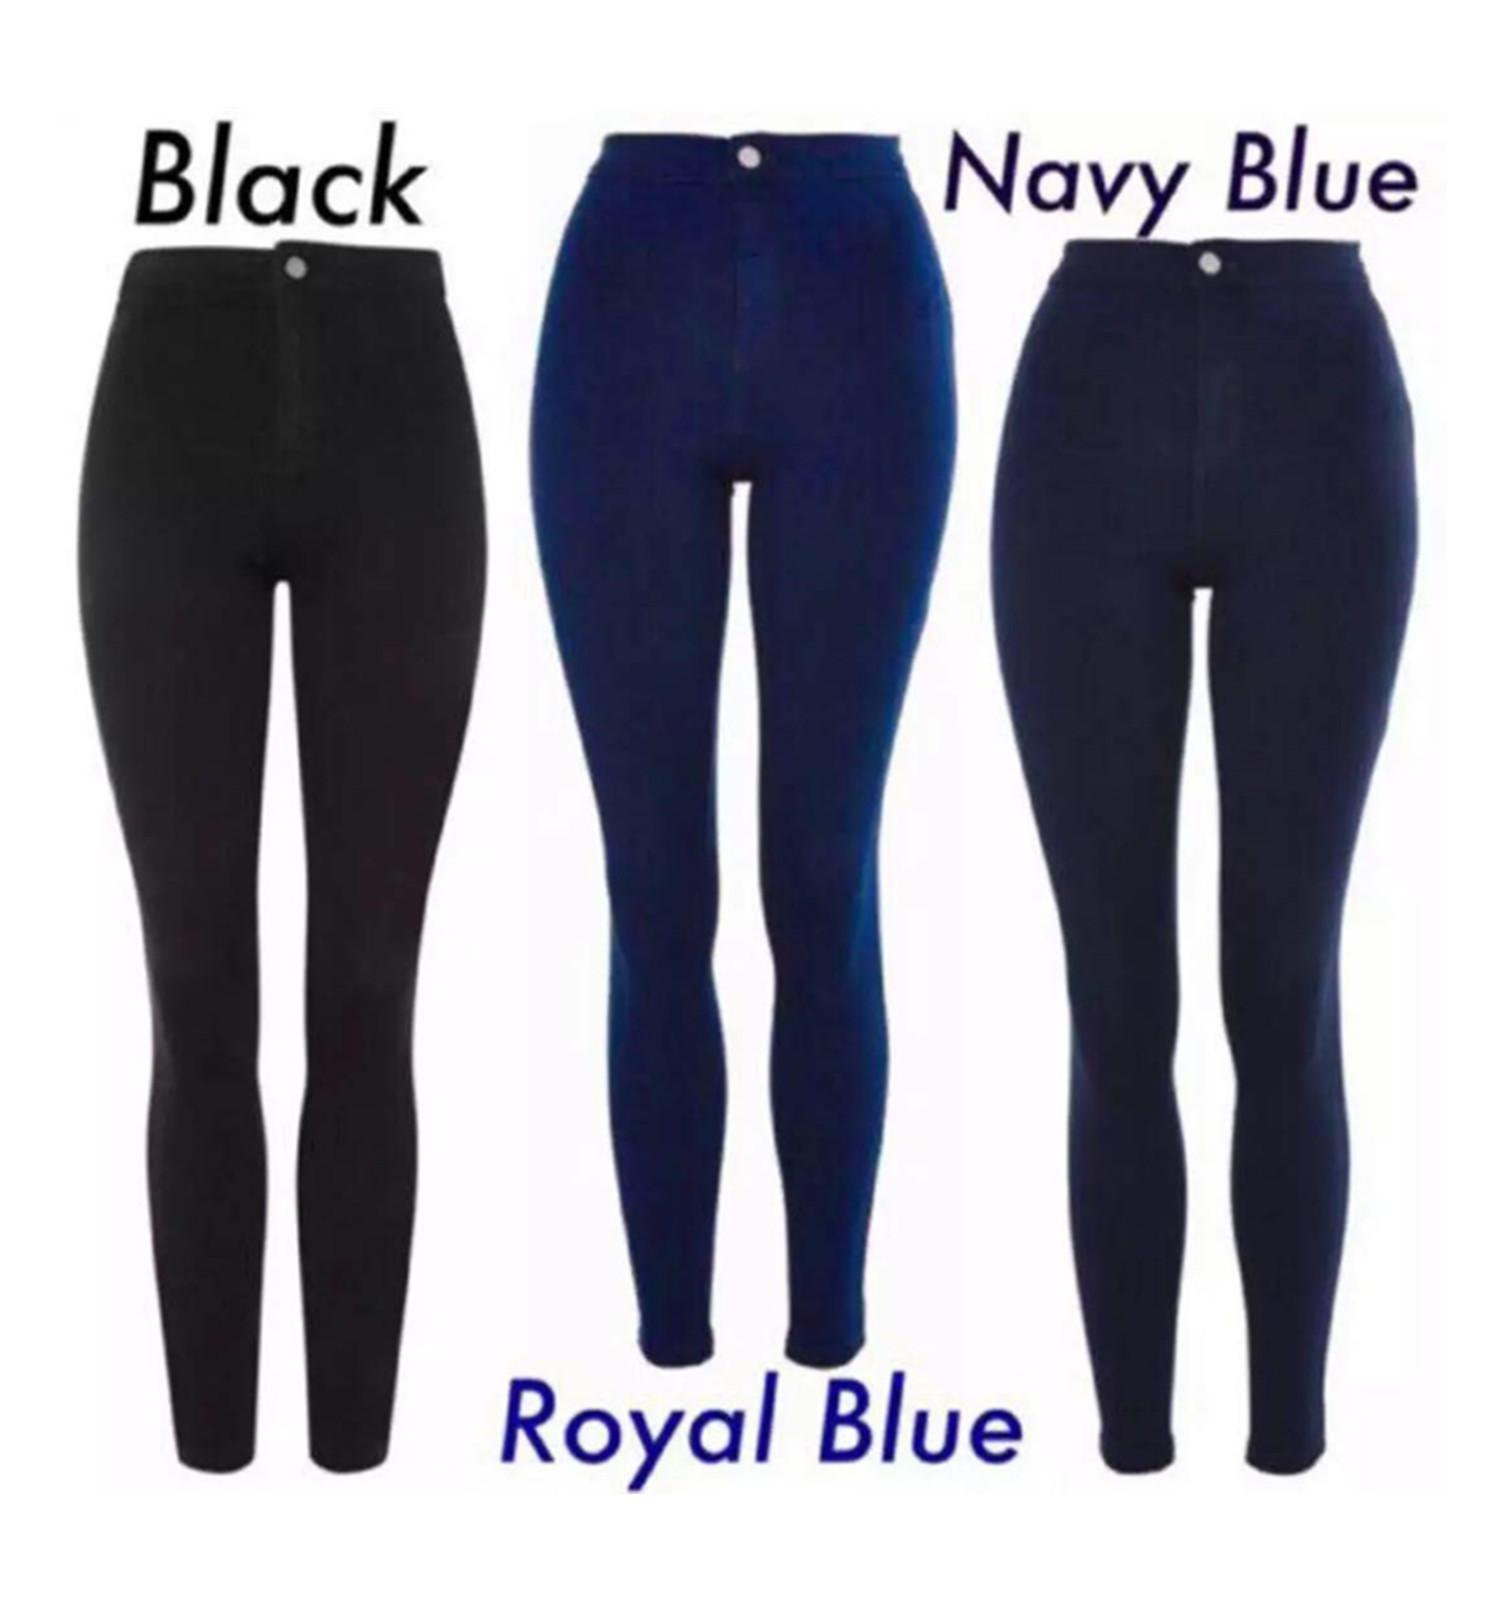 7e3b3a3f762a79 High waist 3 colors stretchable High quality comfortable skinny jeans for  Ladies,COD--